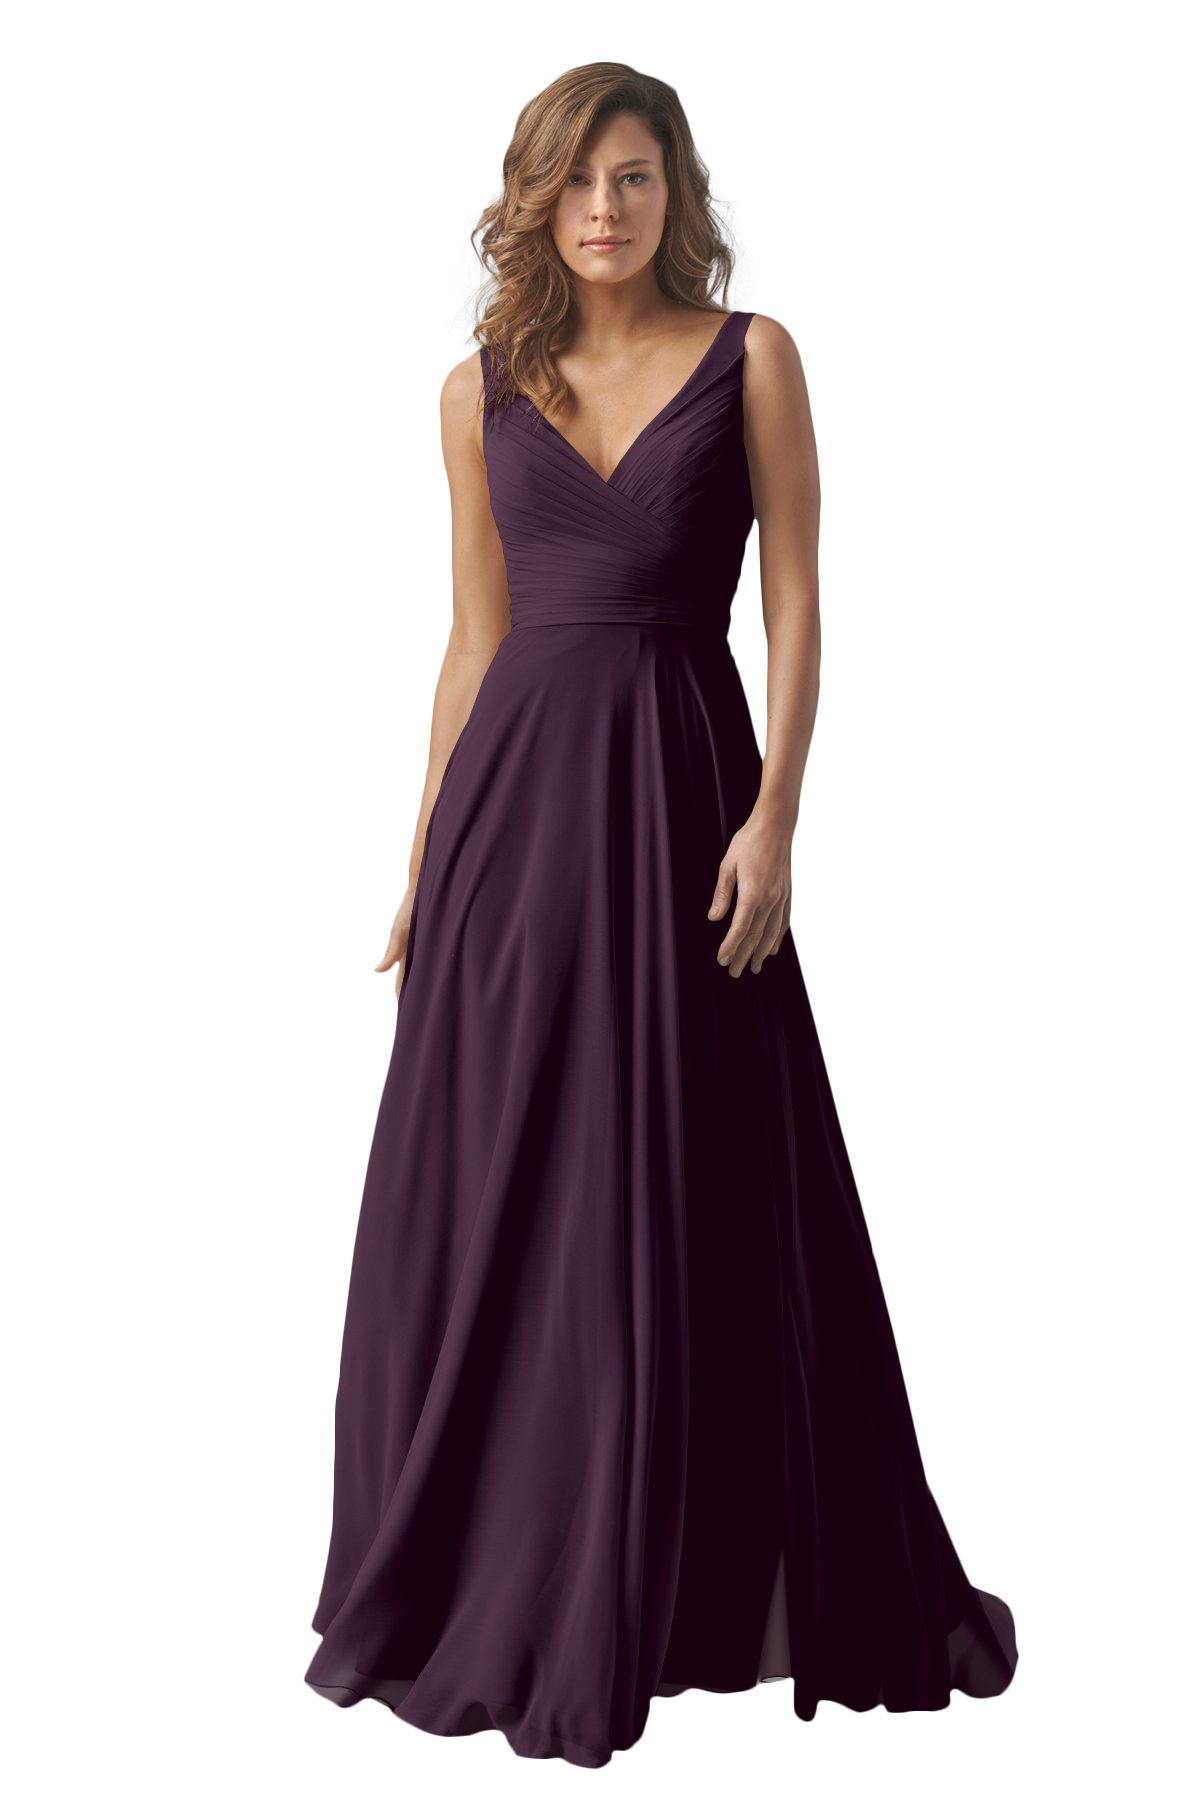 Watters 8542i quick delivery bridesmaid dress in plum in chiffon watters 8542i quick delivery bridesmaid dress in plum in chiffon ombrellifo Image collections